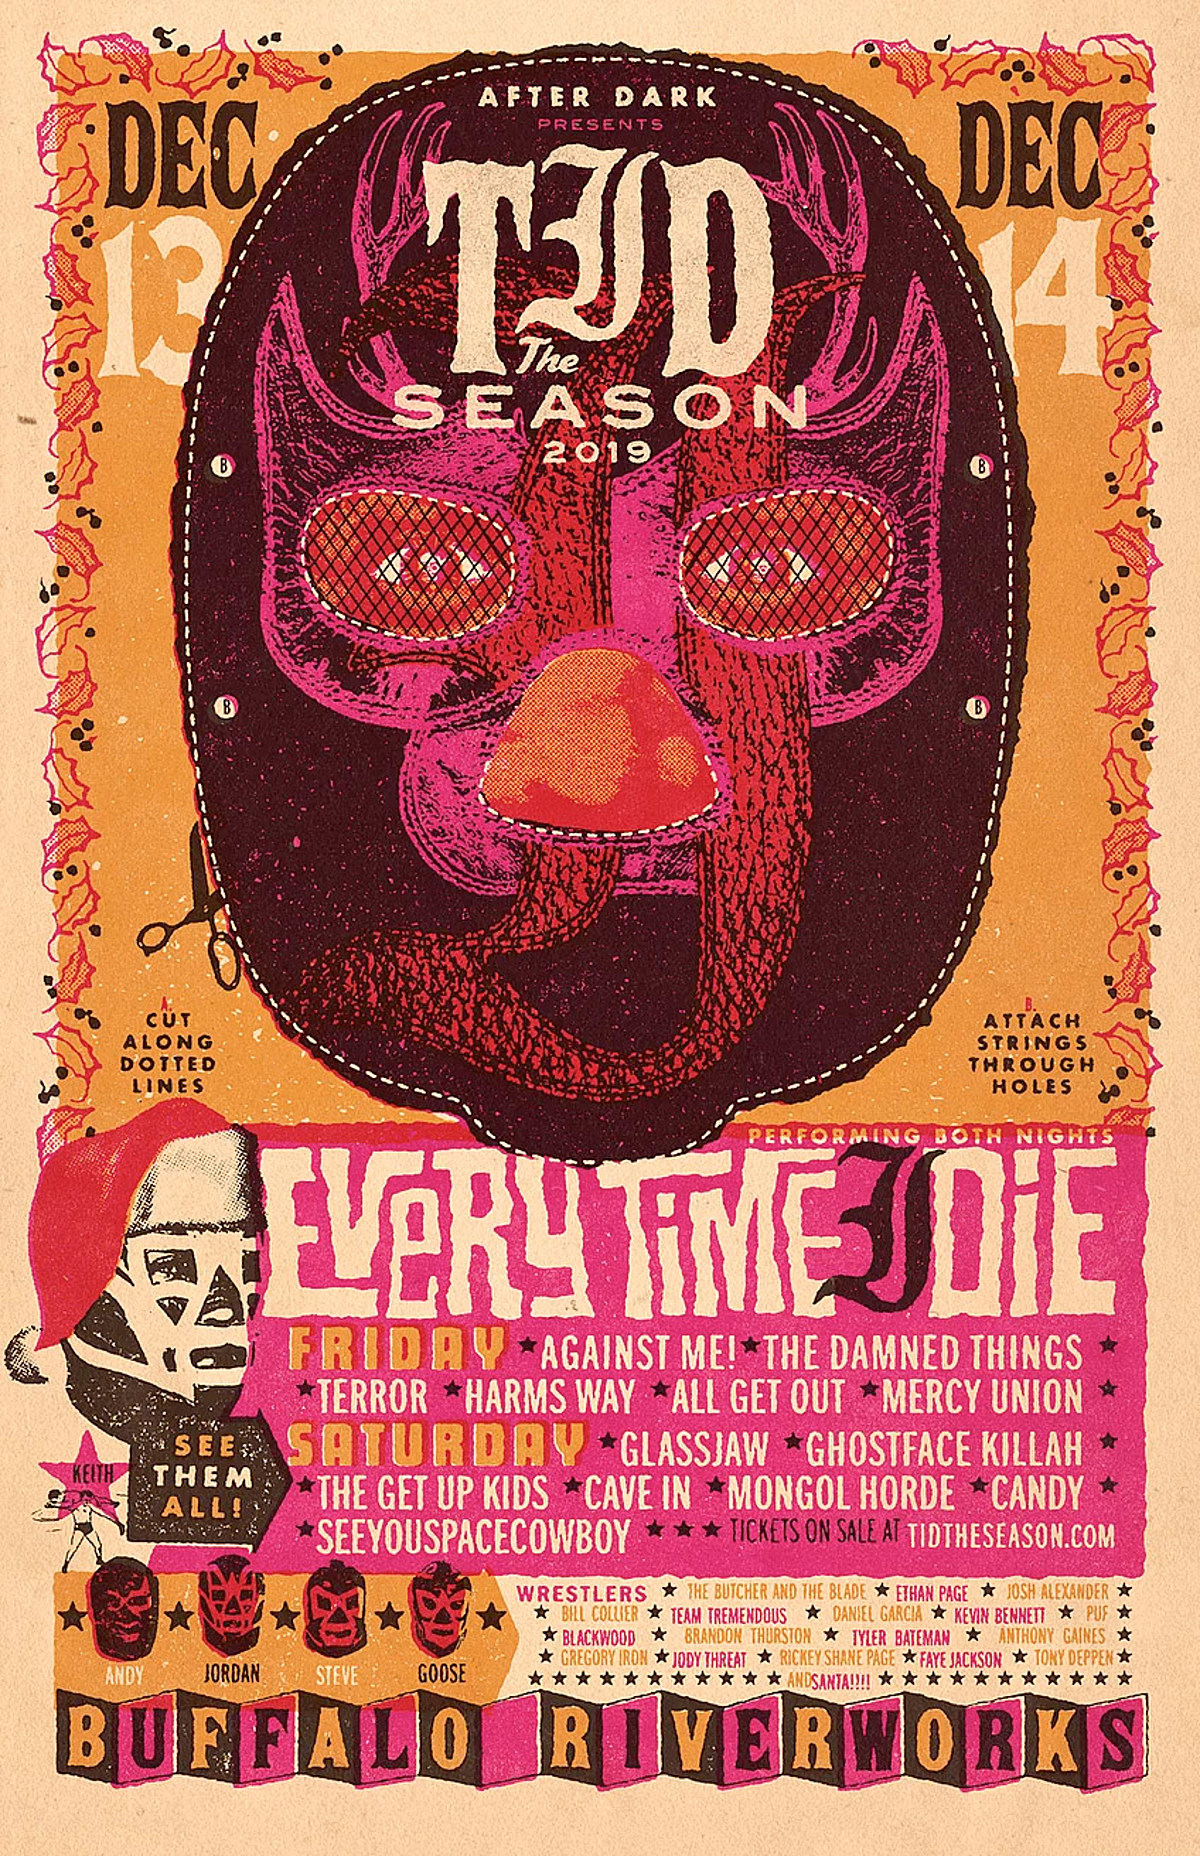 Every Time I Die 2019 holiday show: Against Me!, Cave In, Glassjaw, Ghostface, TGUK, more